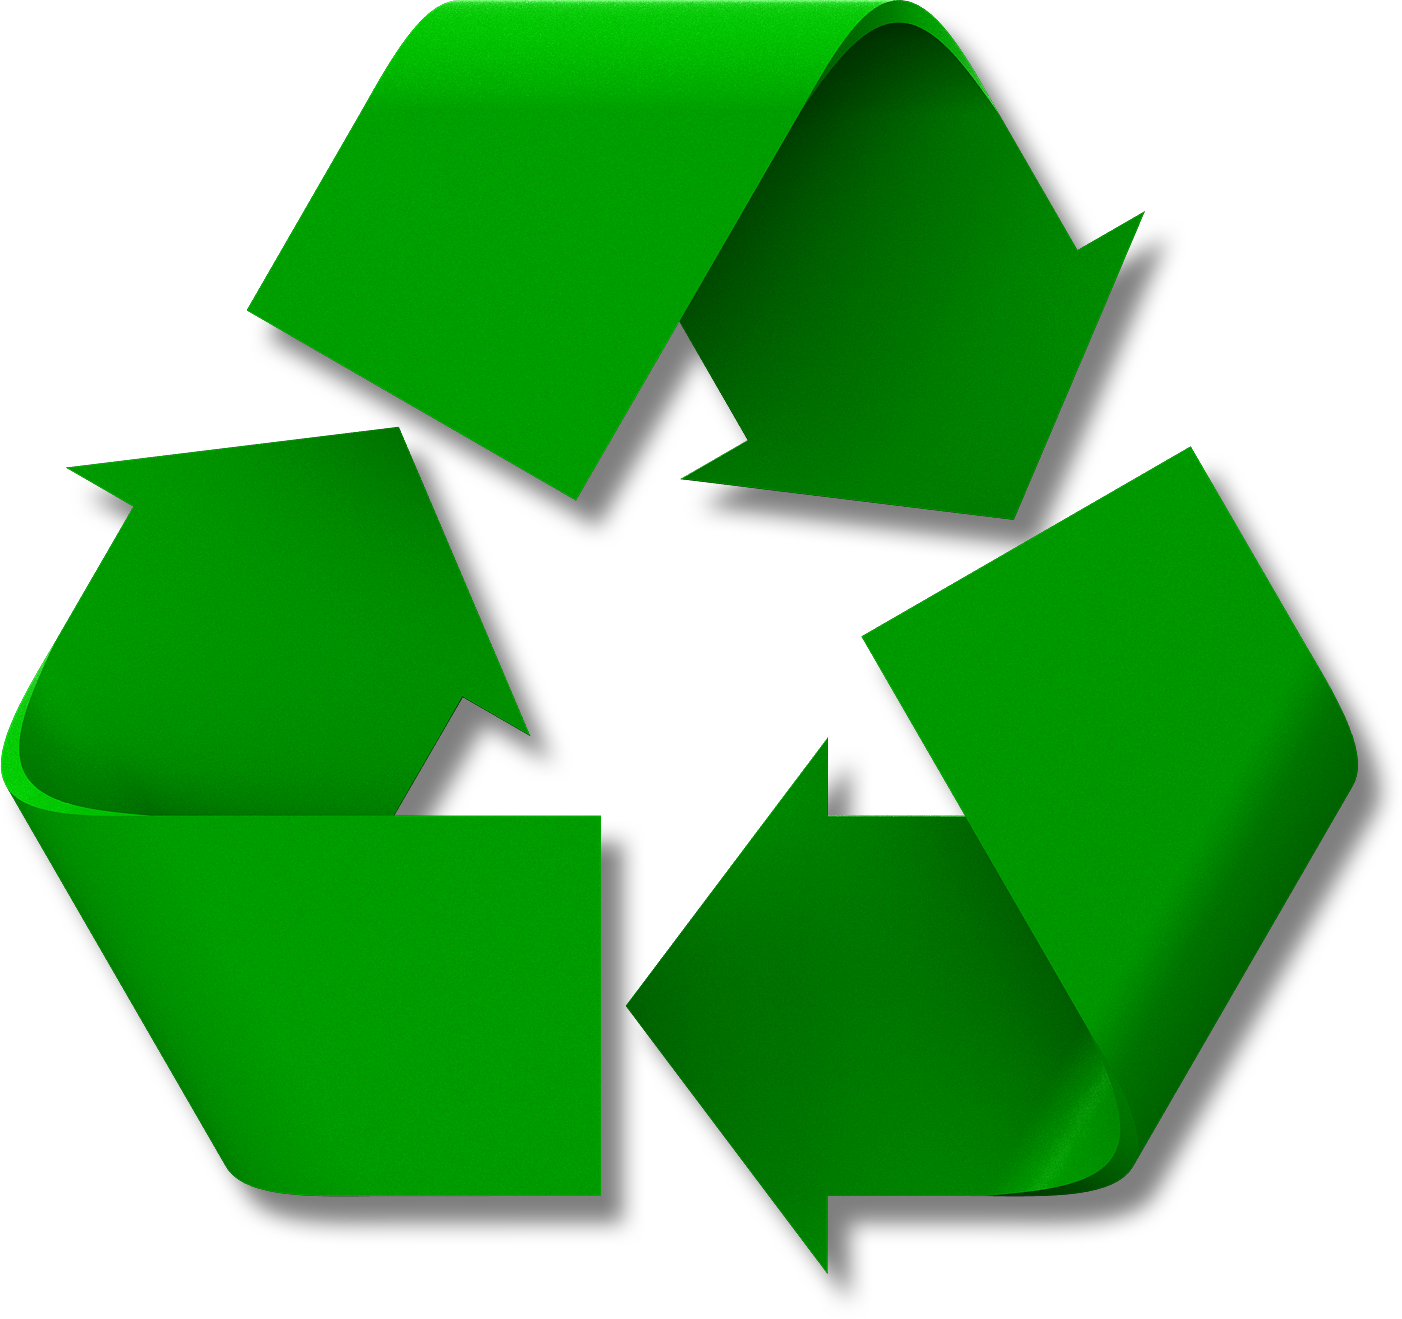 Pictures Of Recycling Signs - ClipArt Best